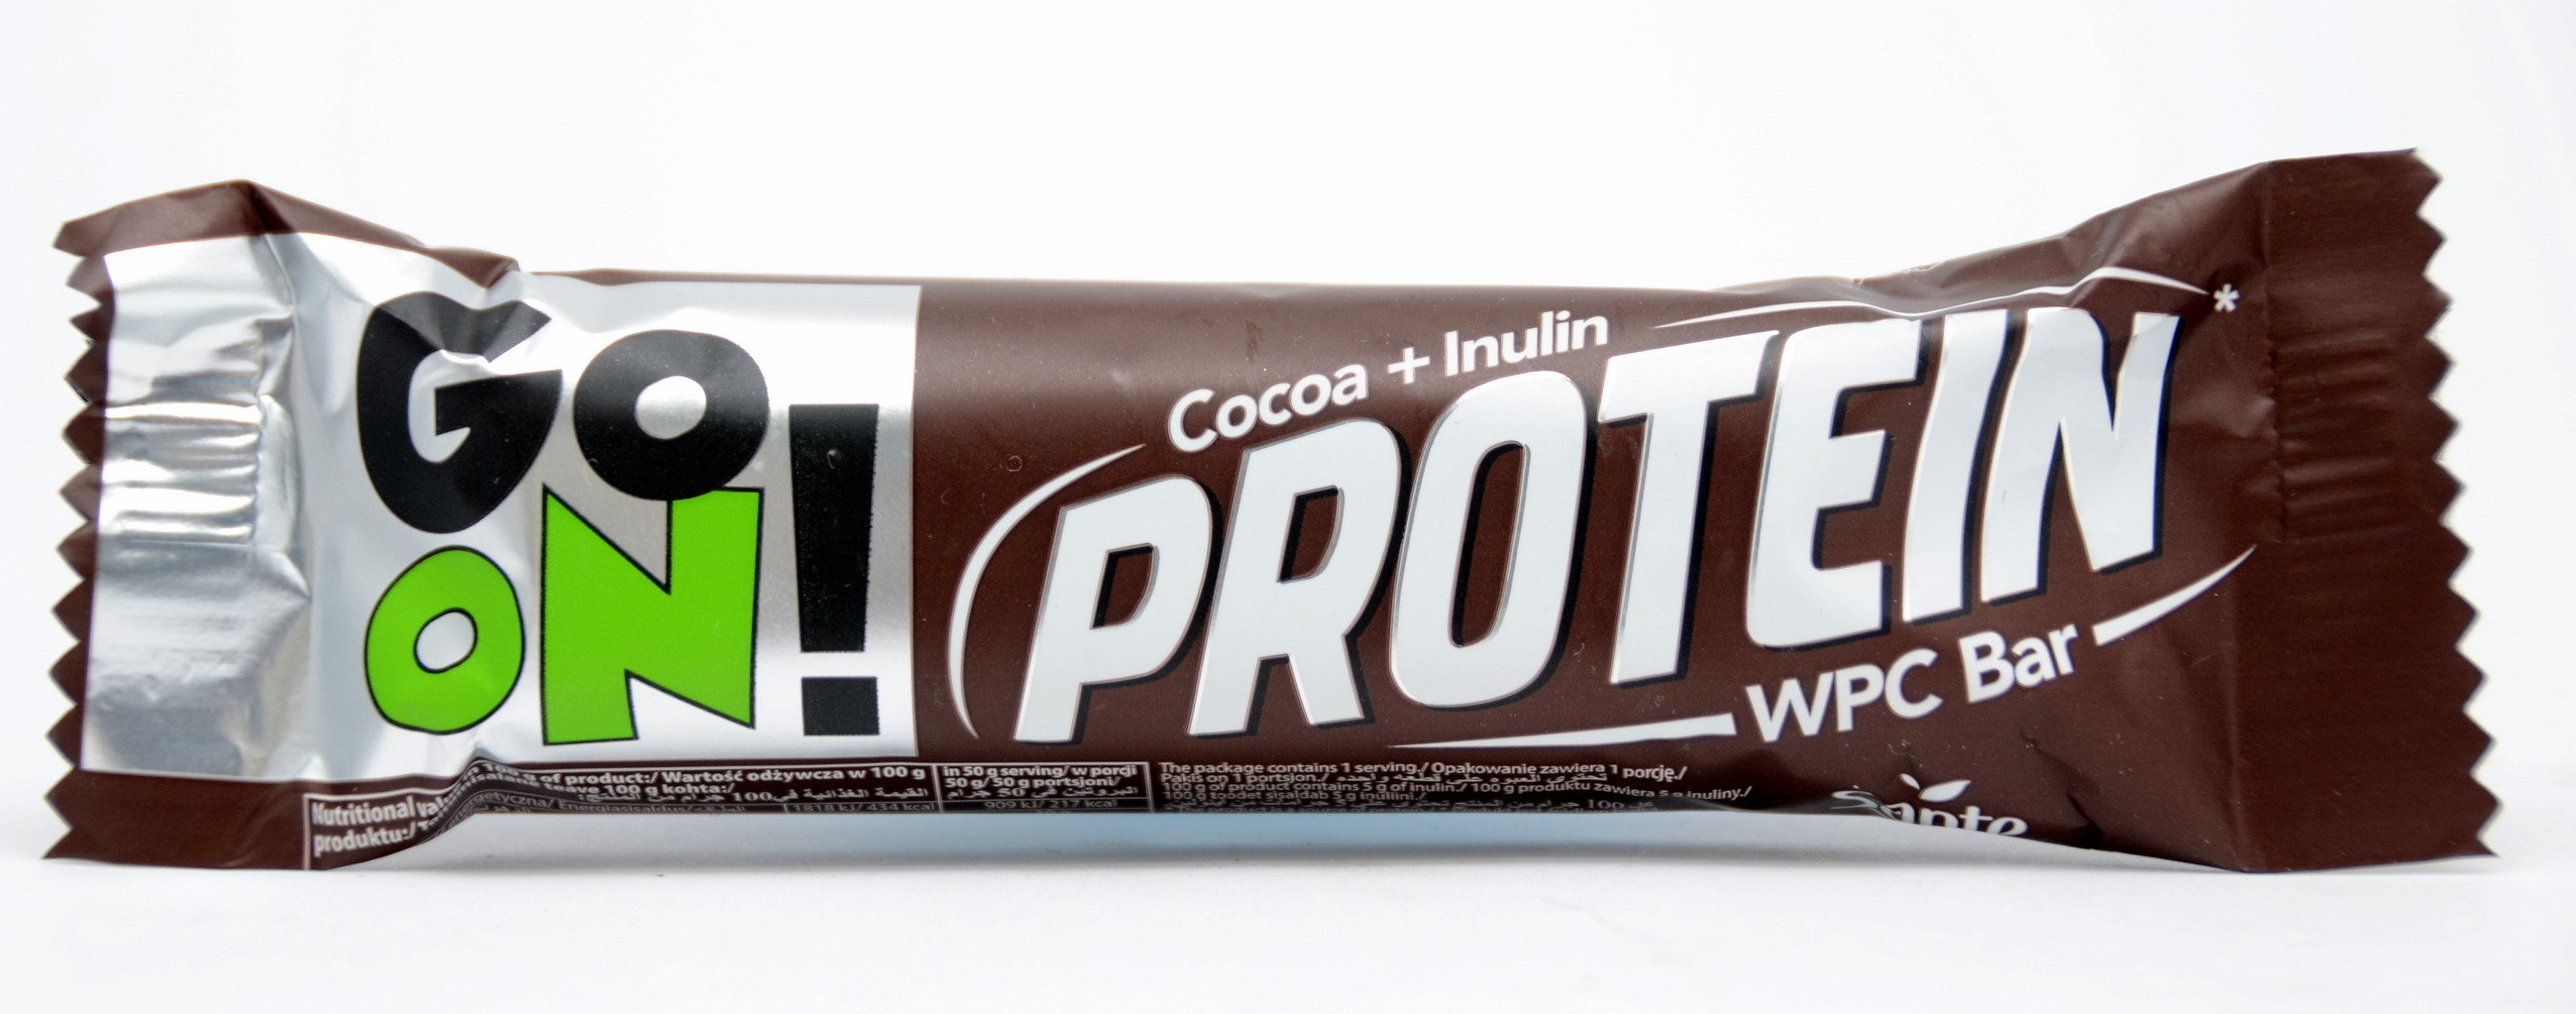 Go On Protein Cocoa Inulin Wpc Bar 50 G Confectionery Sante